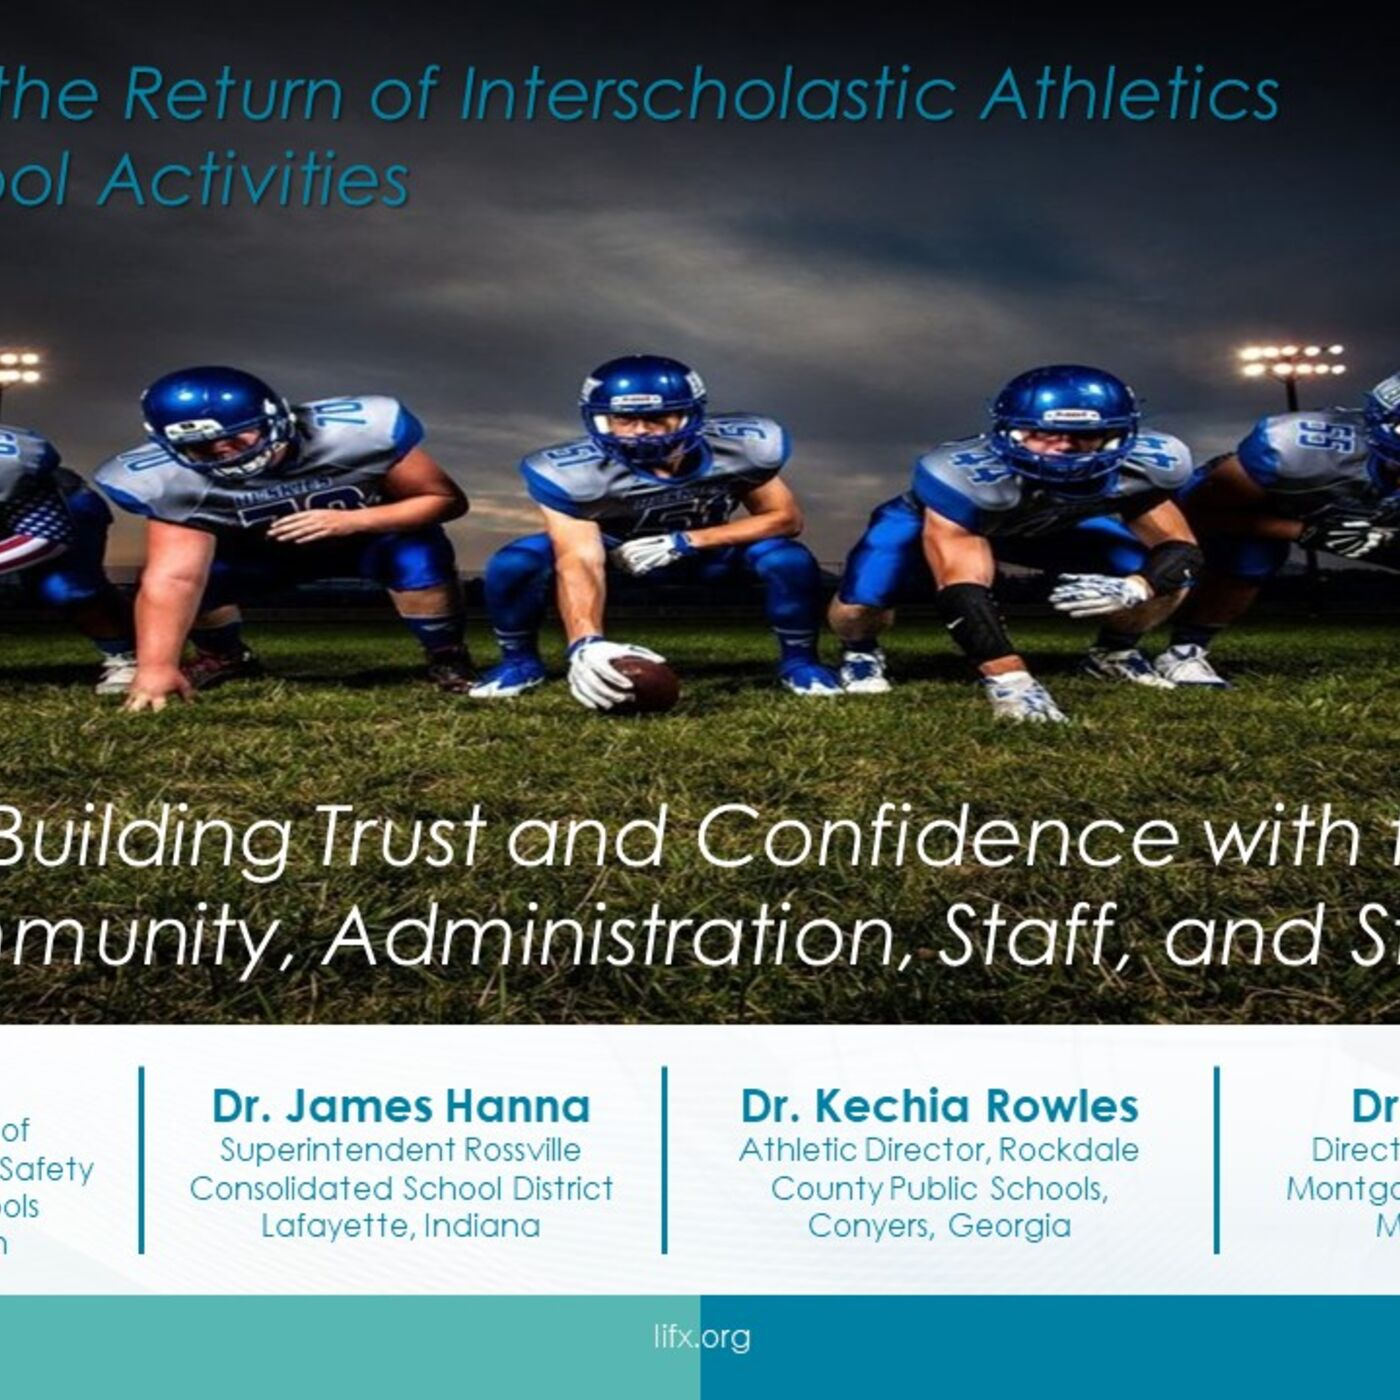 Session 9 - Building Trust and Confidence with the Community, Administration, Staff, and Students